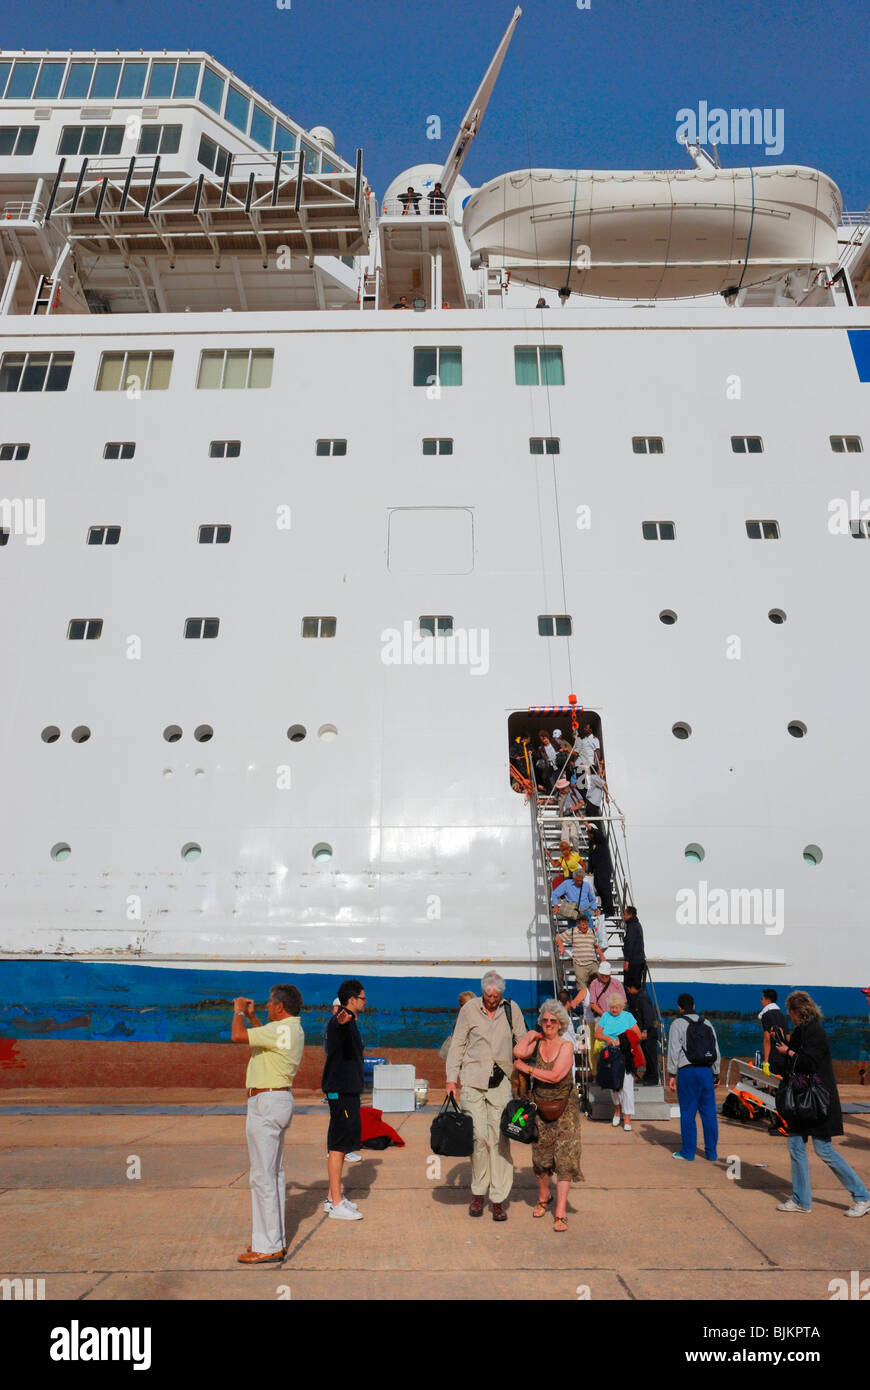 Listing COSTA EUROPA cruise ship after crashing into the quay, evacuation of the passengers, pier of Sharm el Sheikh - Stock Image